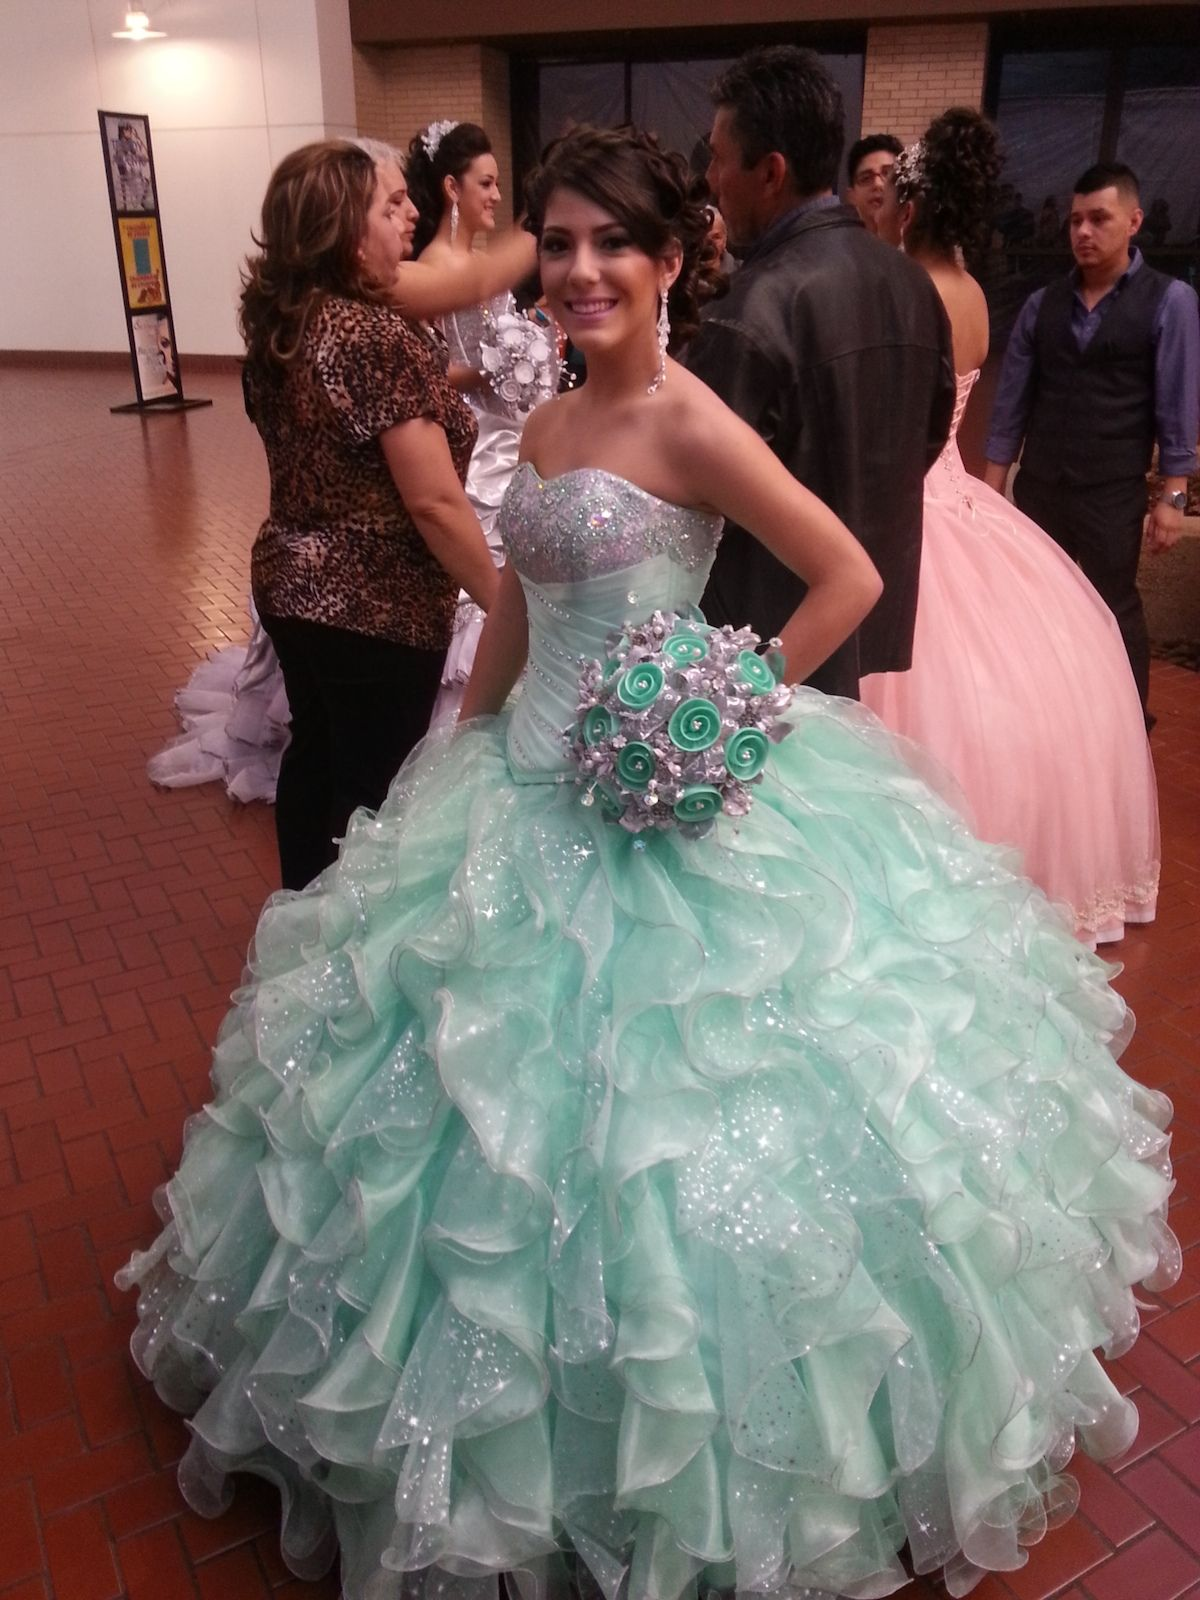 Fancy Prom Dresses In The Mall Model - Womens Dresses & Gowns ...